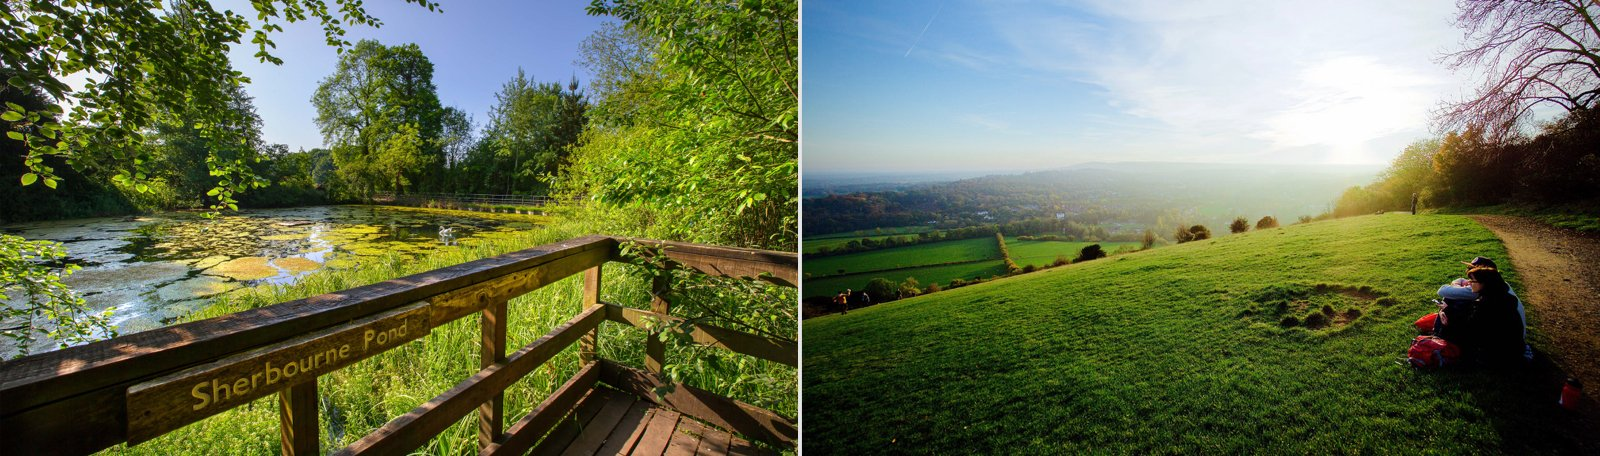 Top 5 picnic spots in Surrey